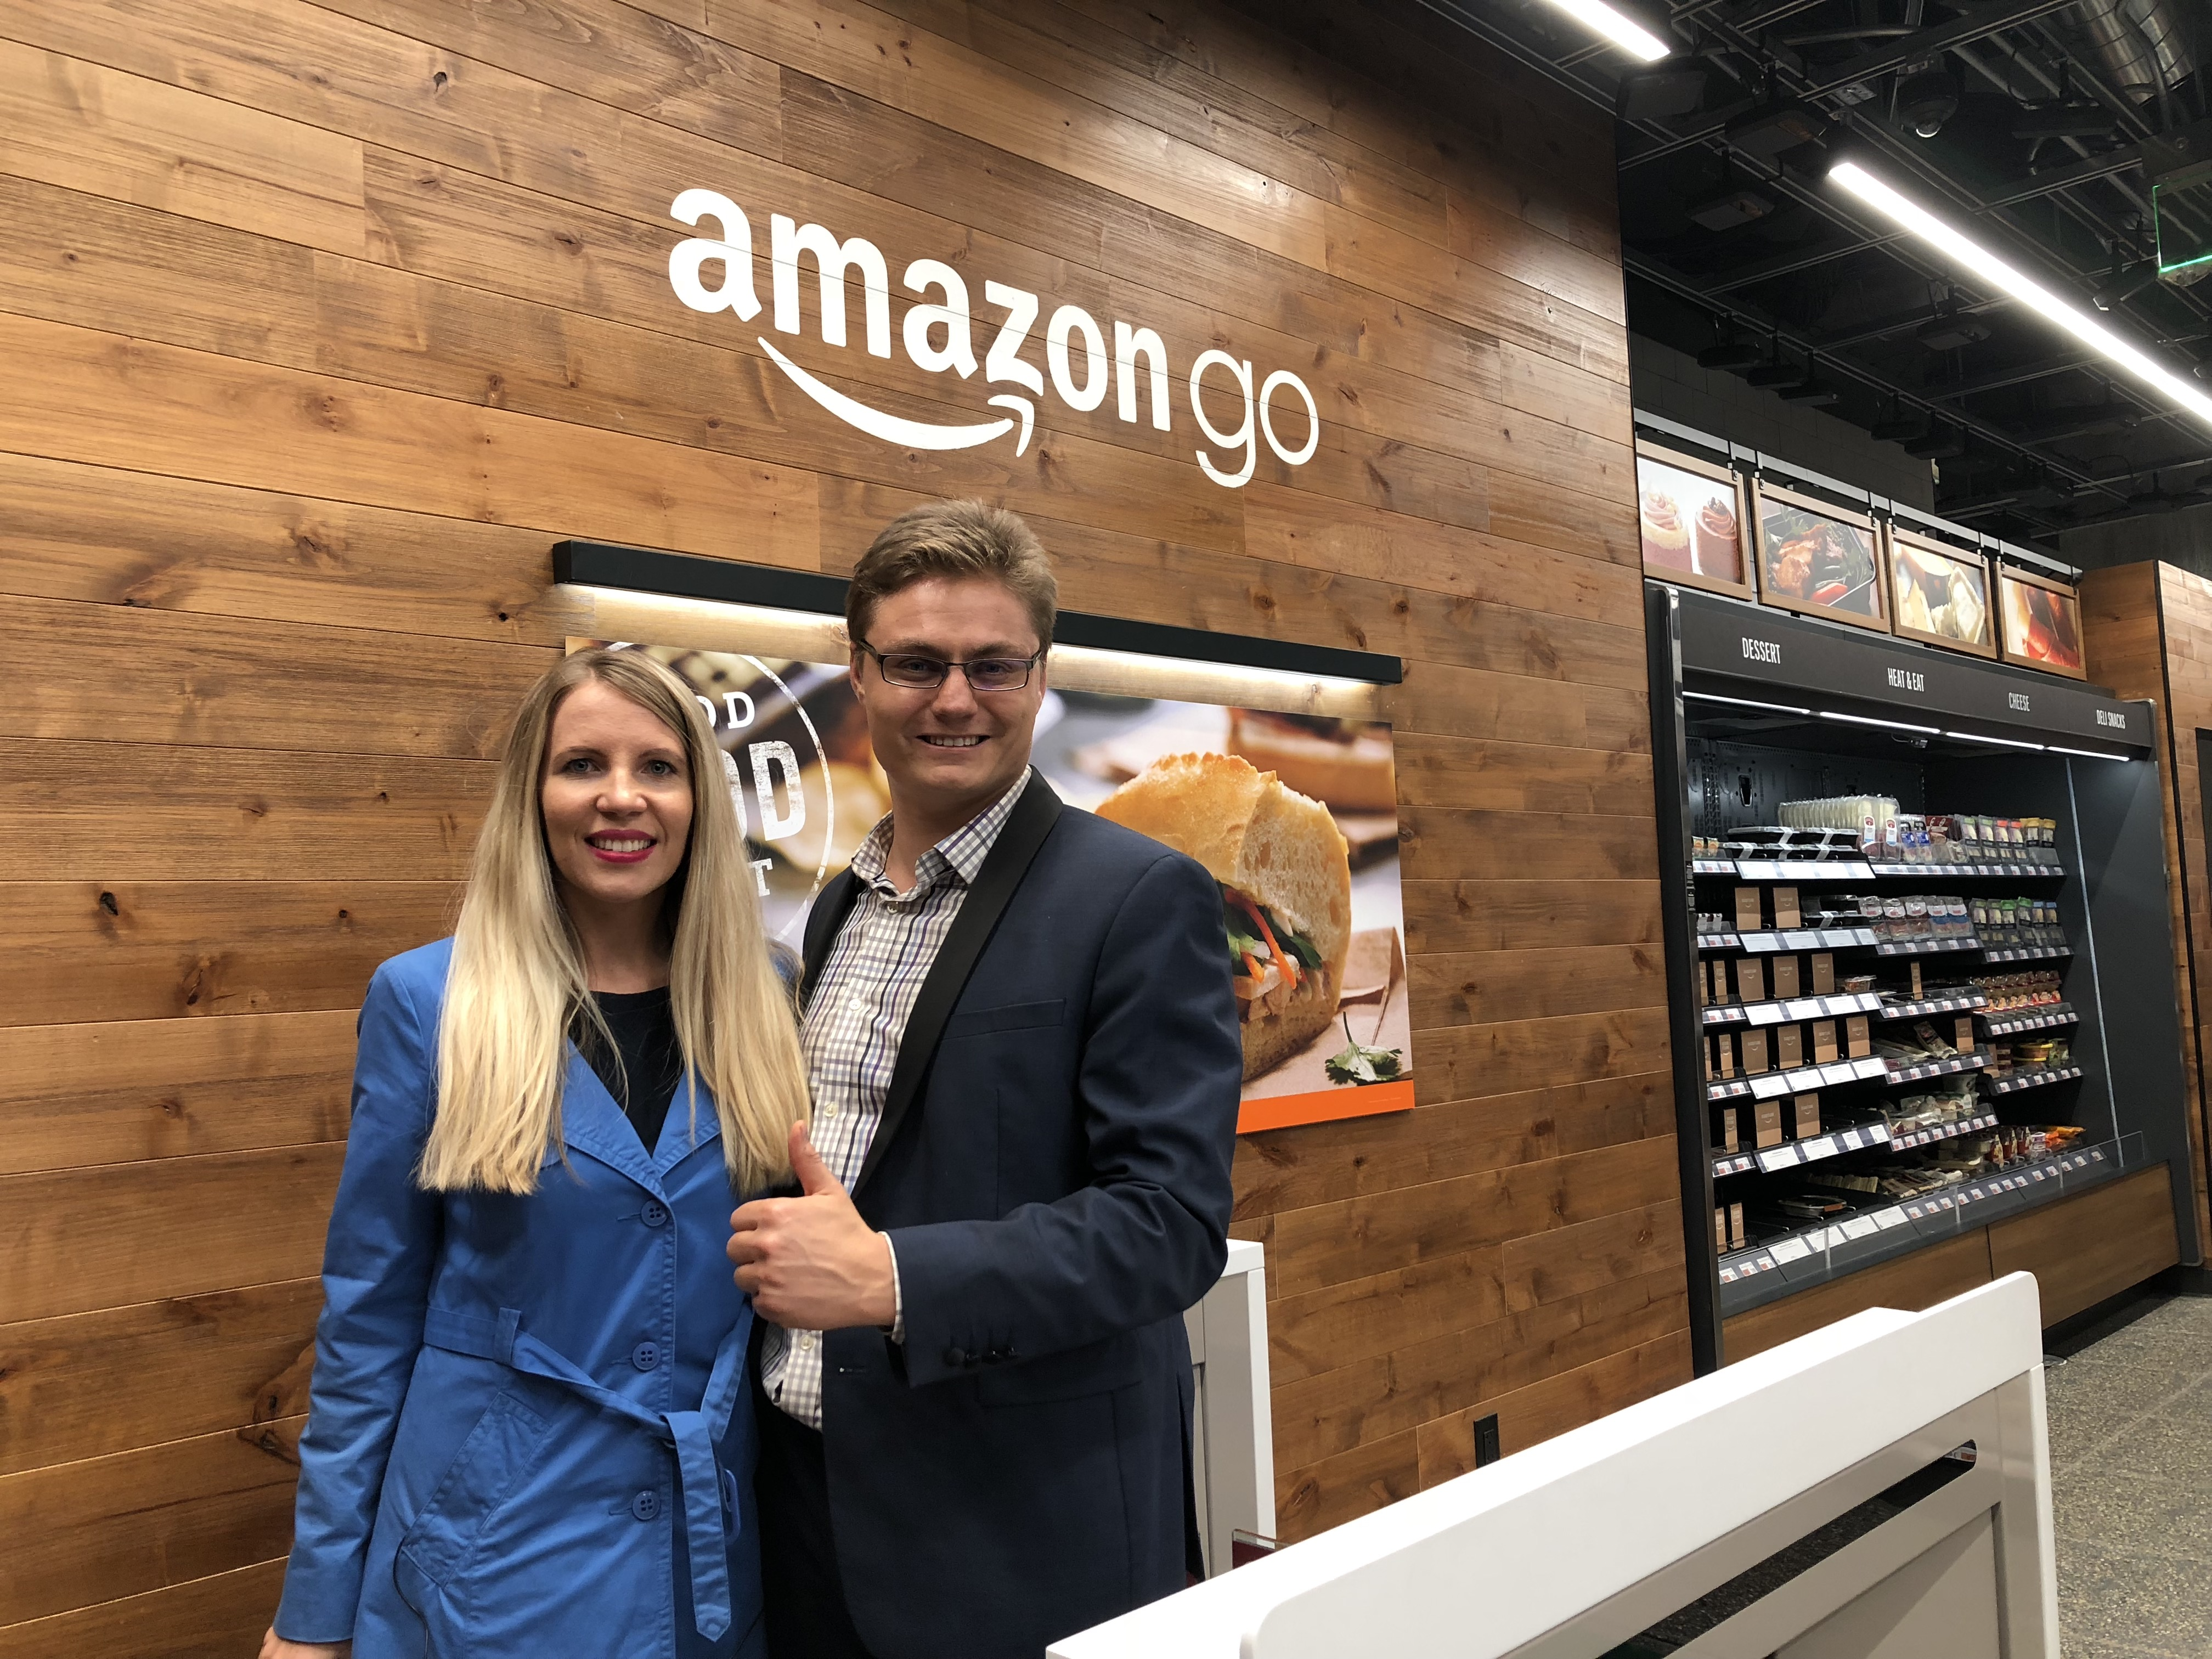 Artificial intelligence is also wrong. As in the US, we cheated Amazon Go - the store of the future without cashiers and sellers